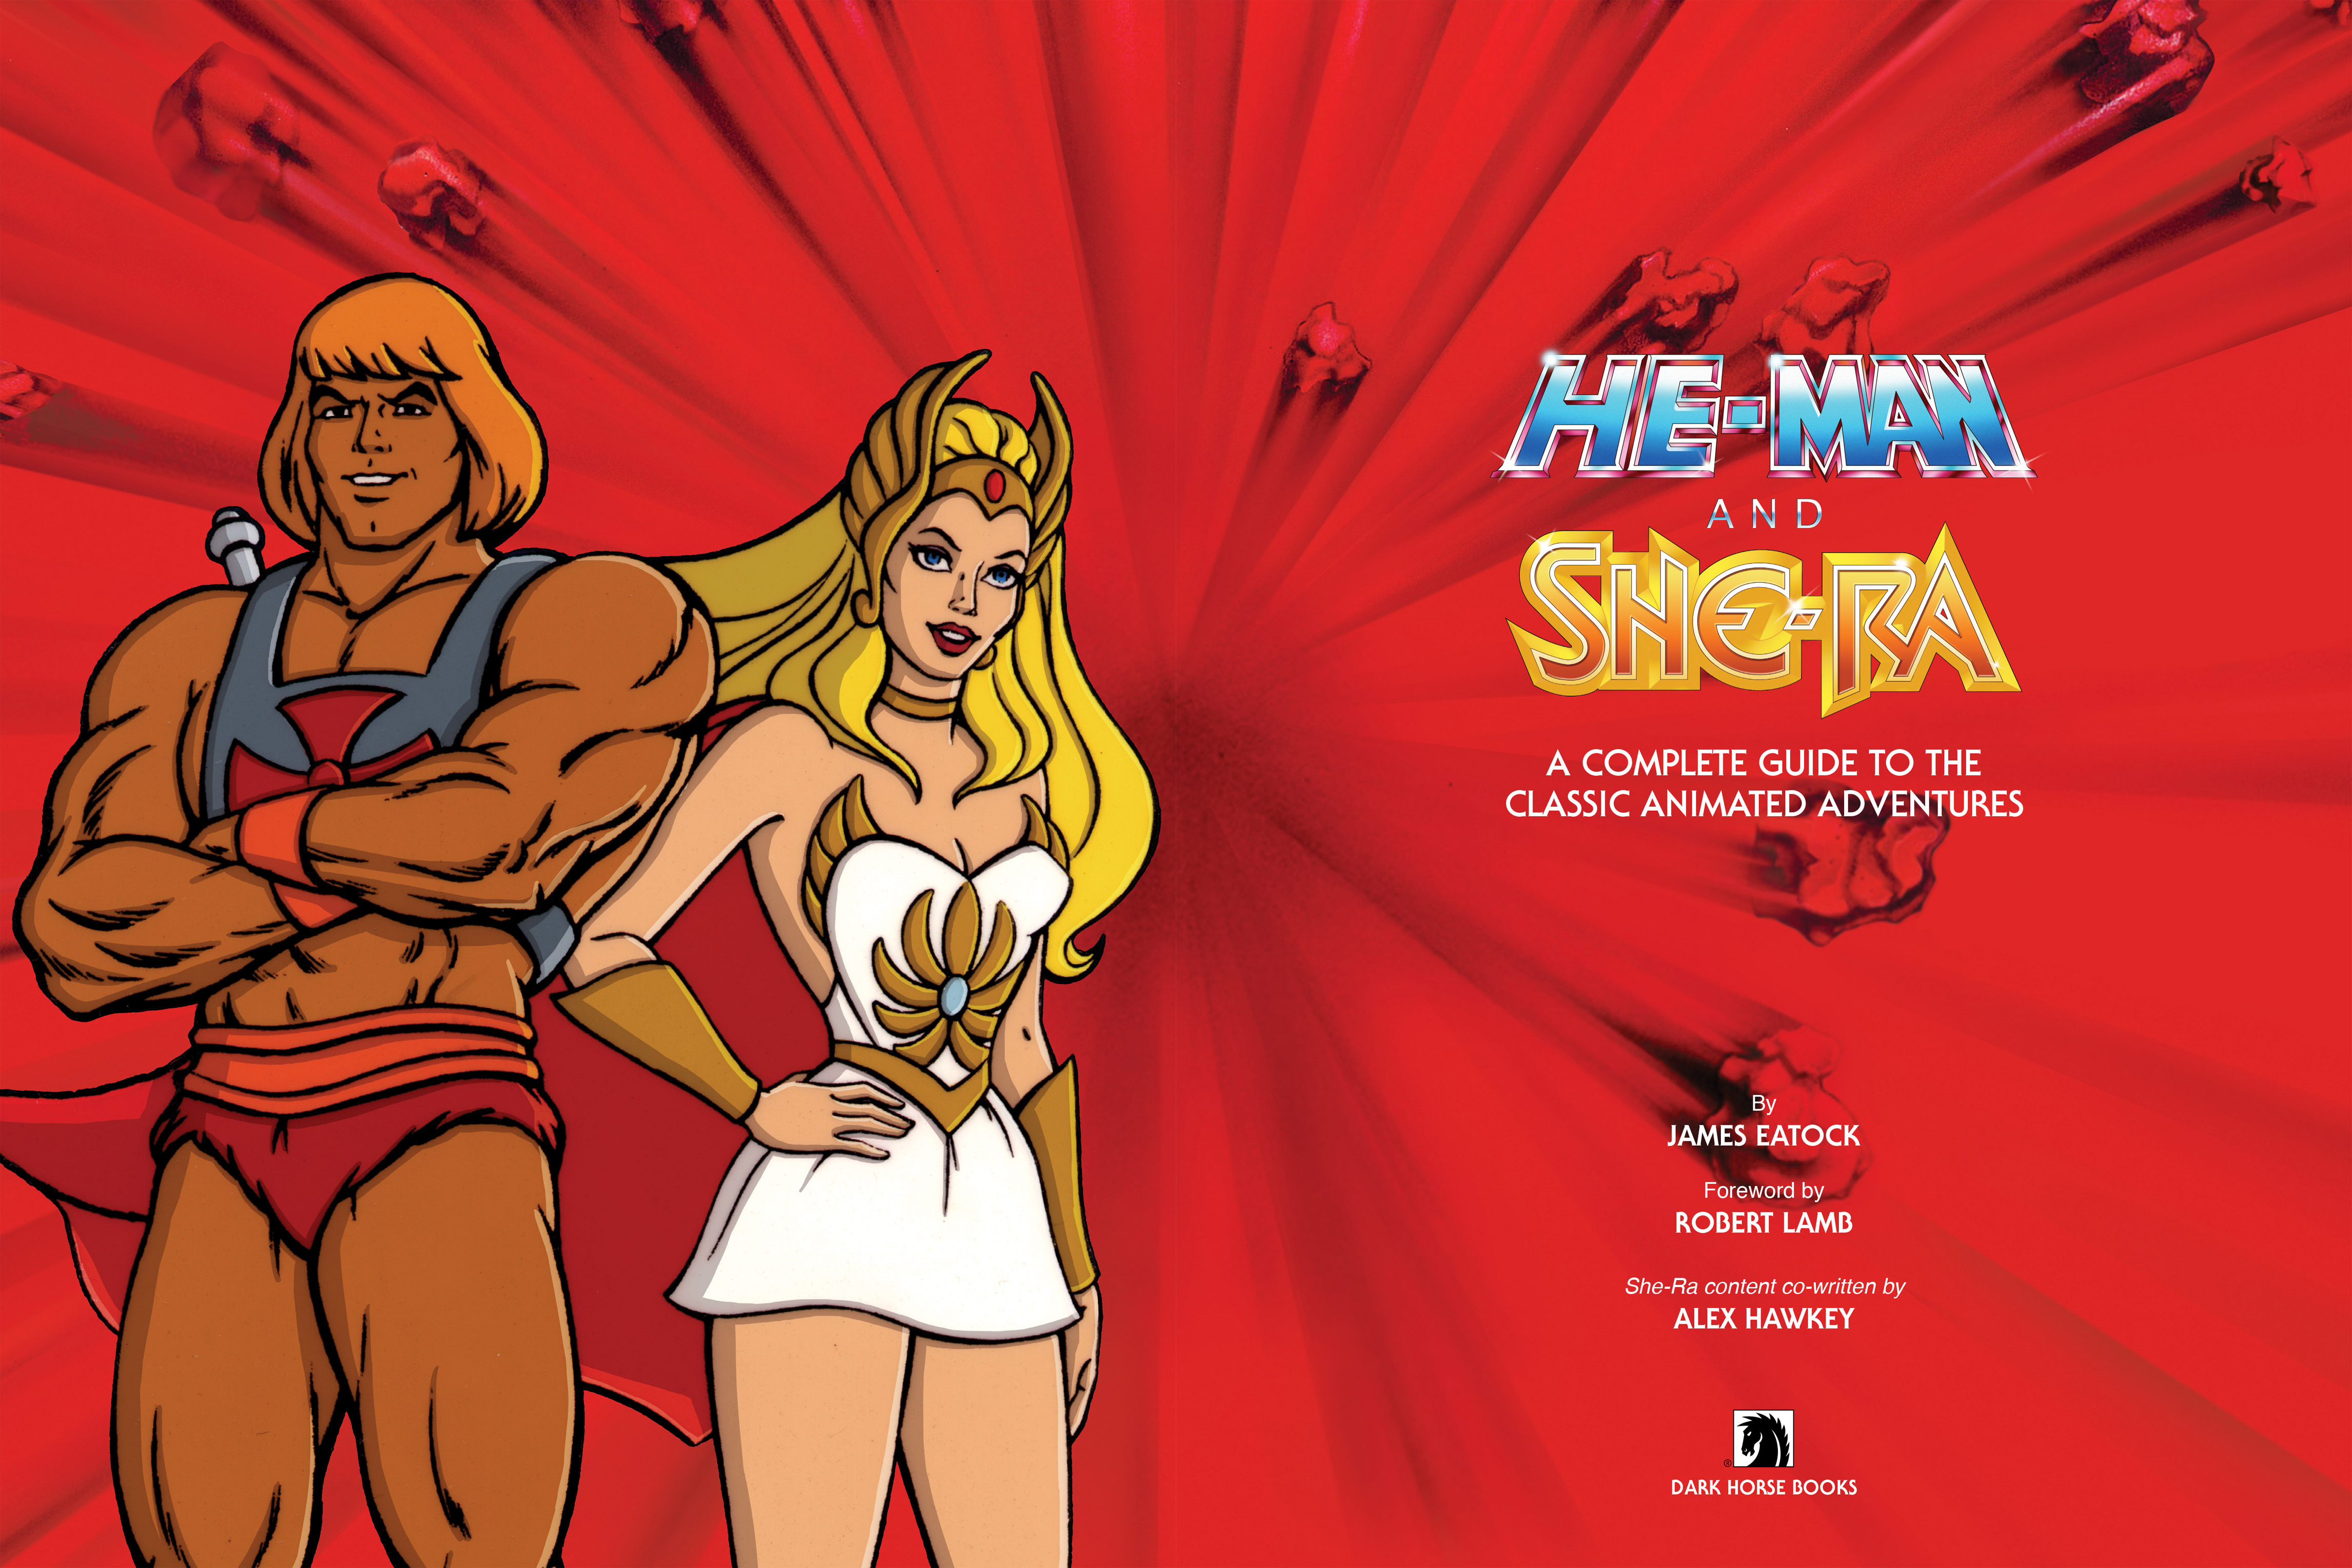 Read online He-Man and She-Ra: A Complete Guide to the Classic Animated Adventures comic -  Issue # TPB (Part 1) - 4